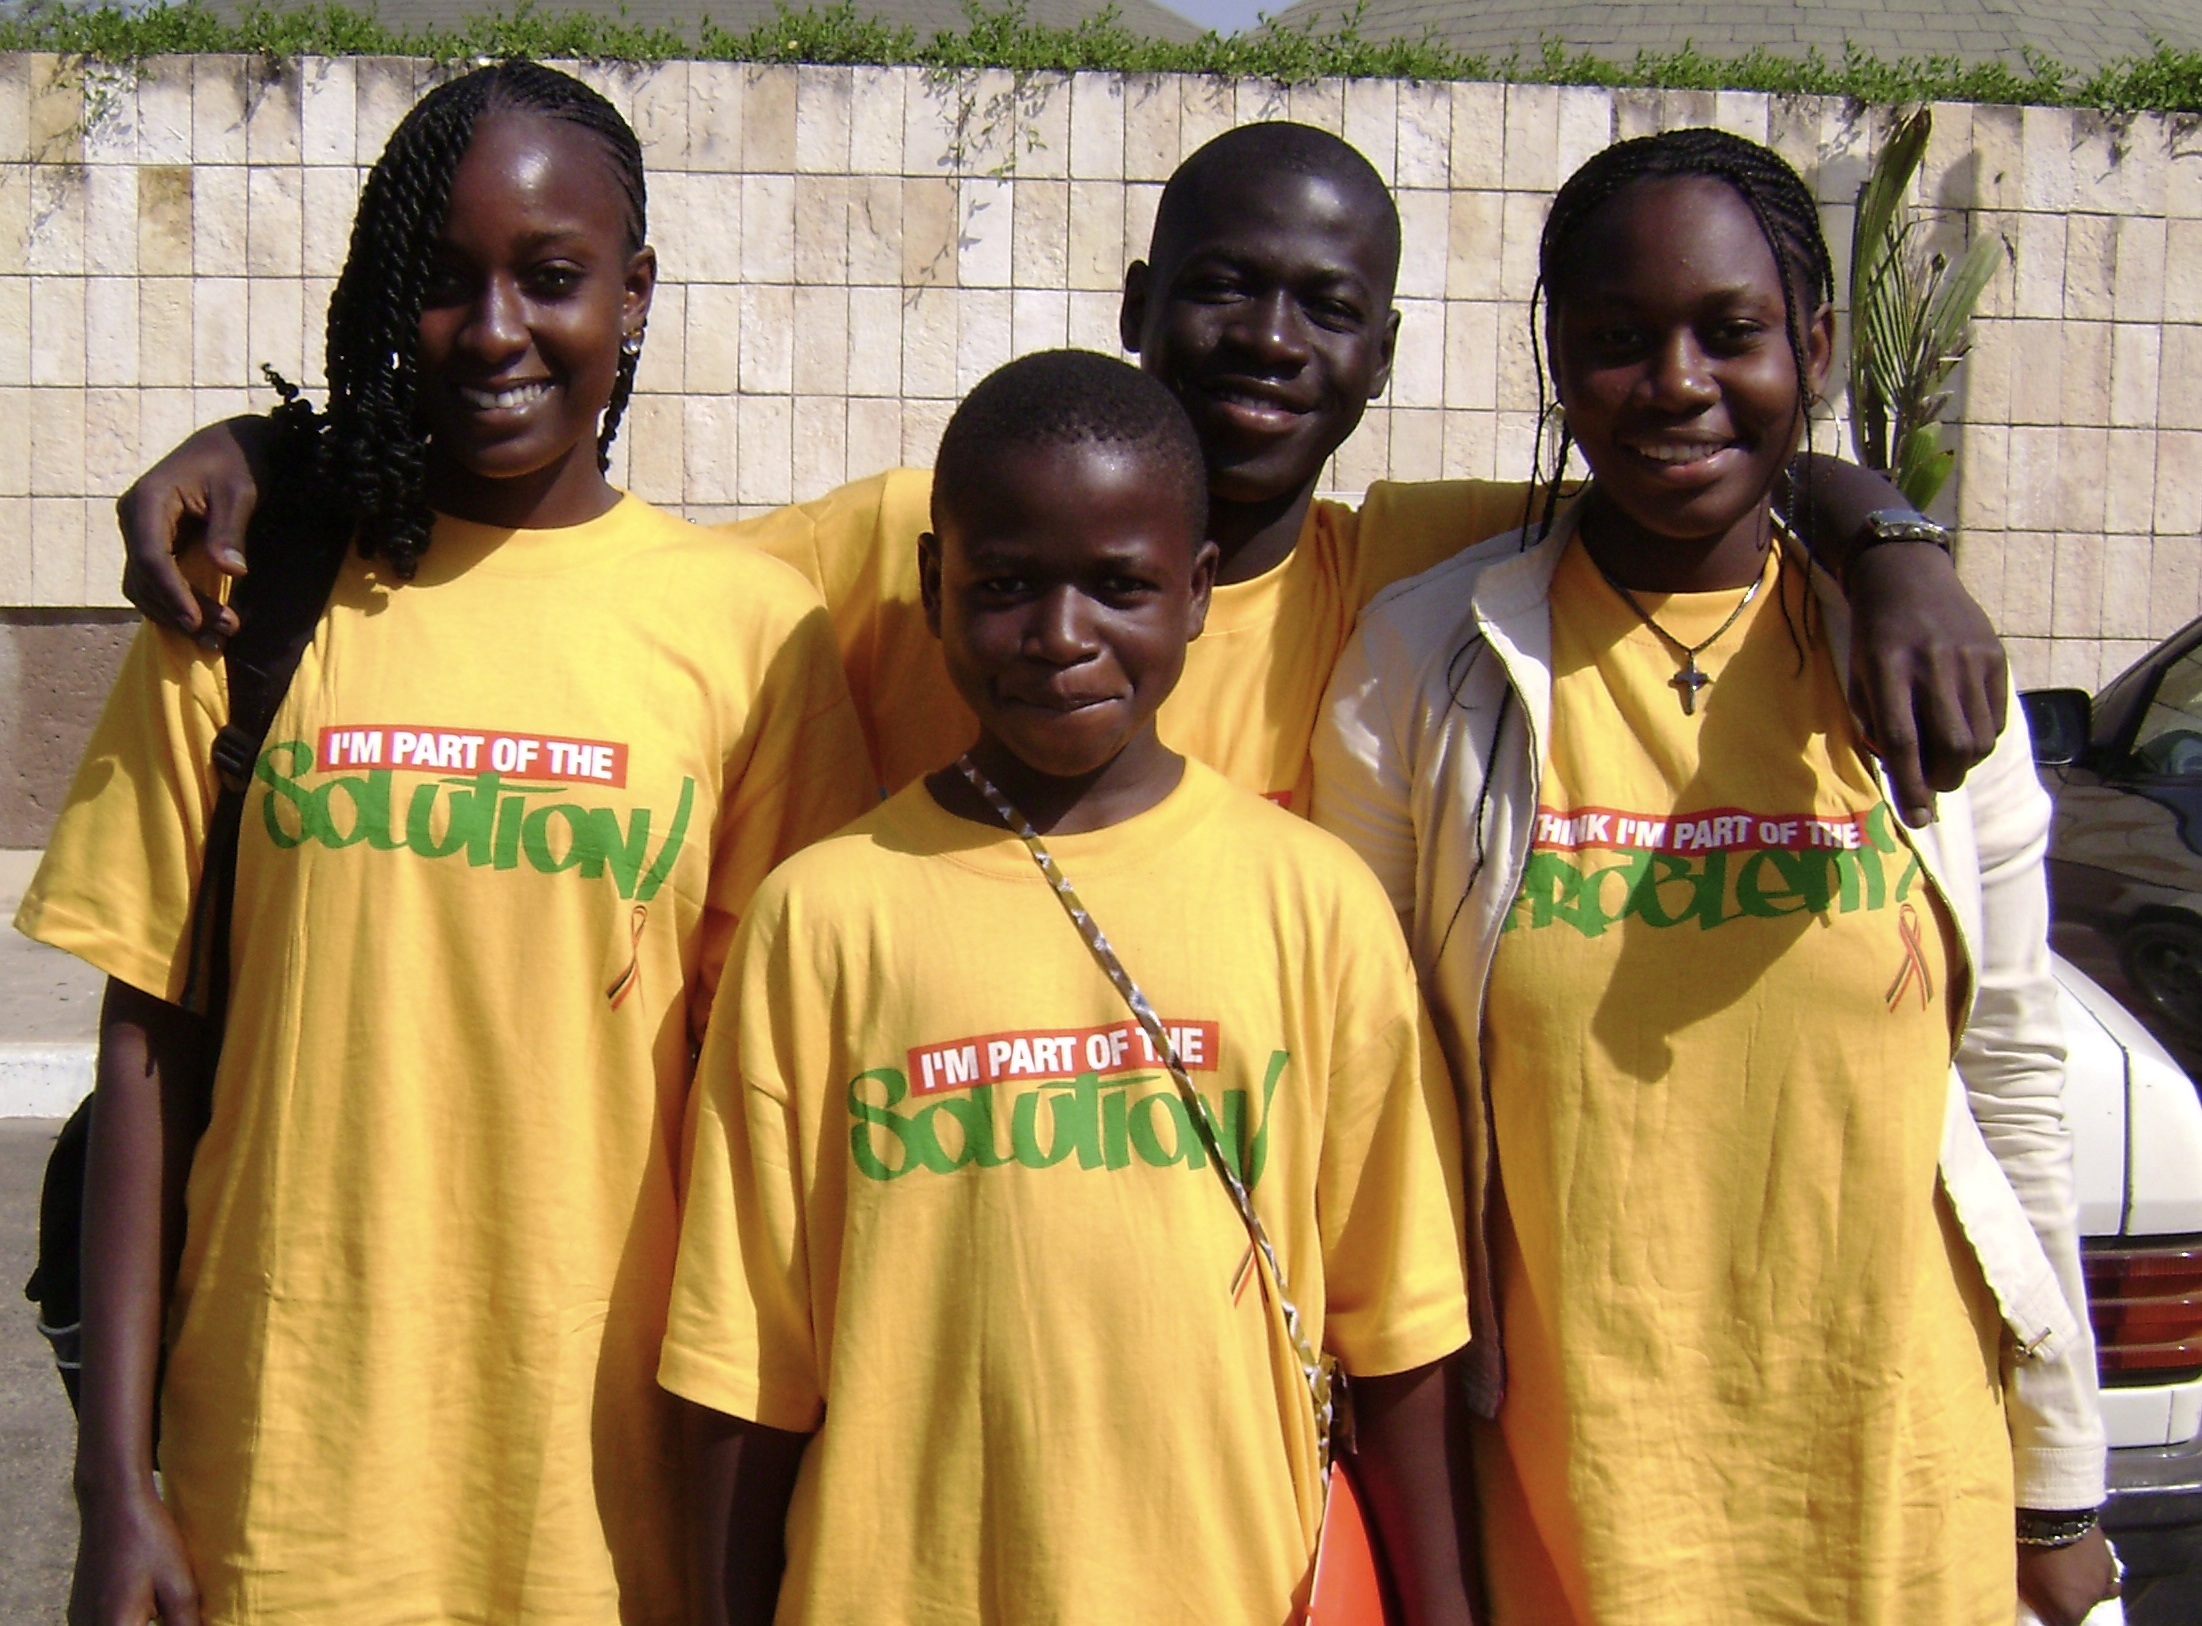 Youths attending an international conference on HIV/AIDS and sexually transmitted infections, Dakar, Senegal, December 2008